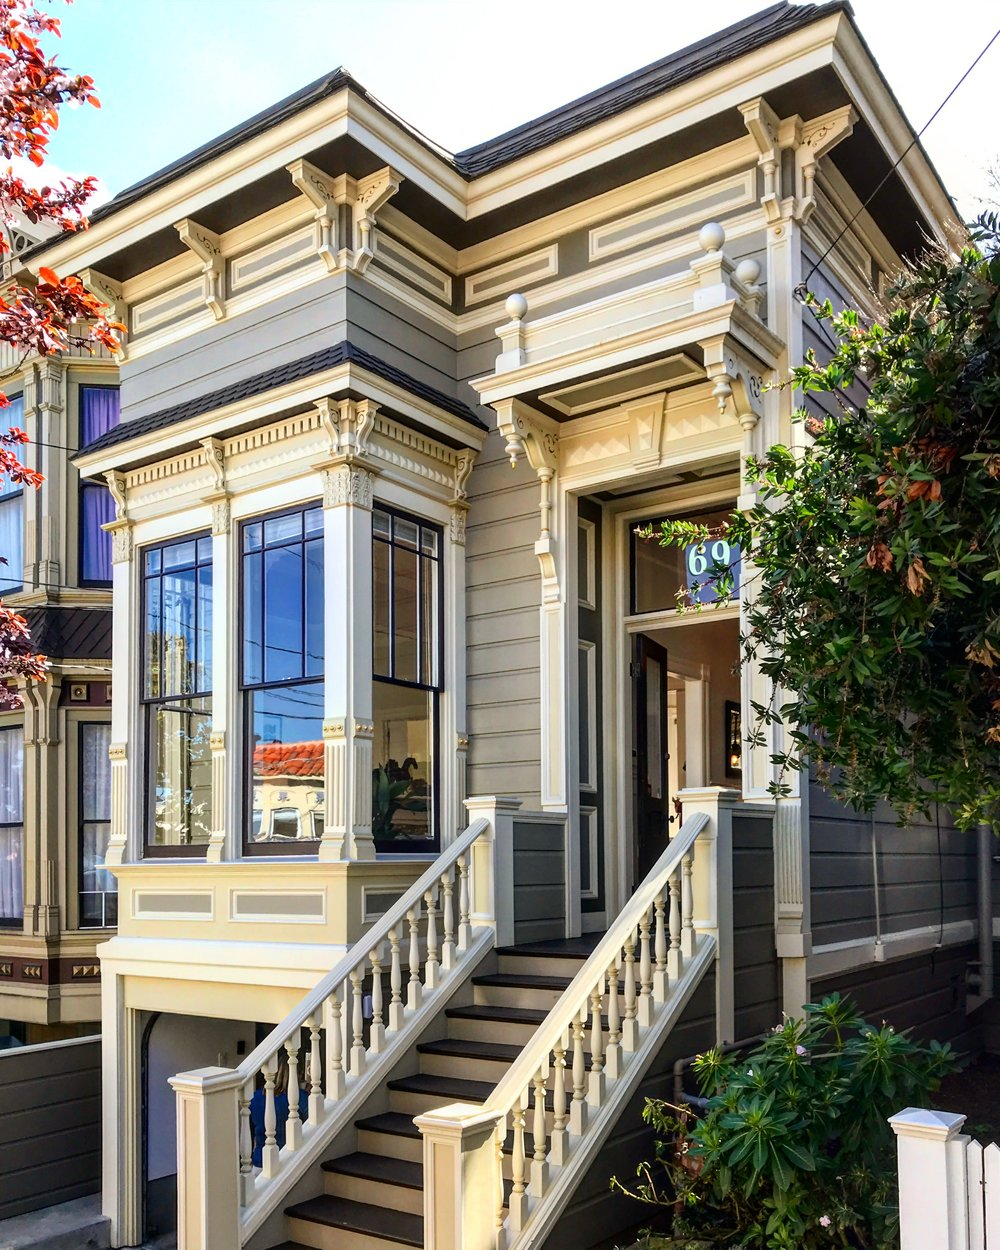 Victorian Architecture in Pacific Heights